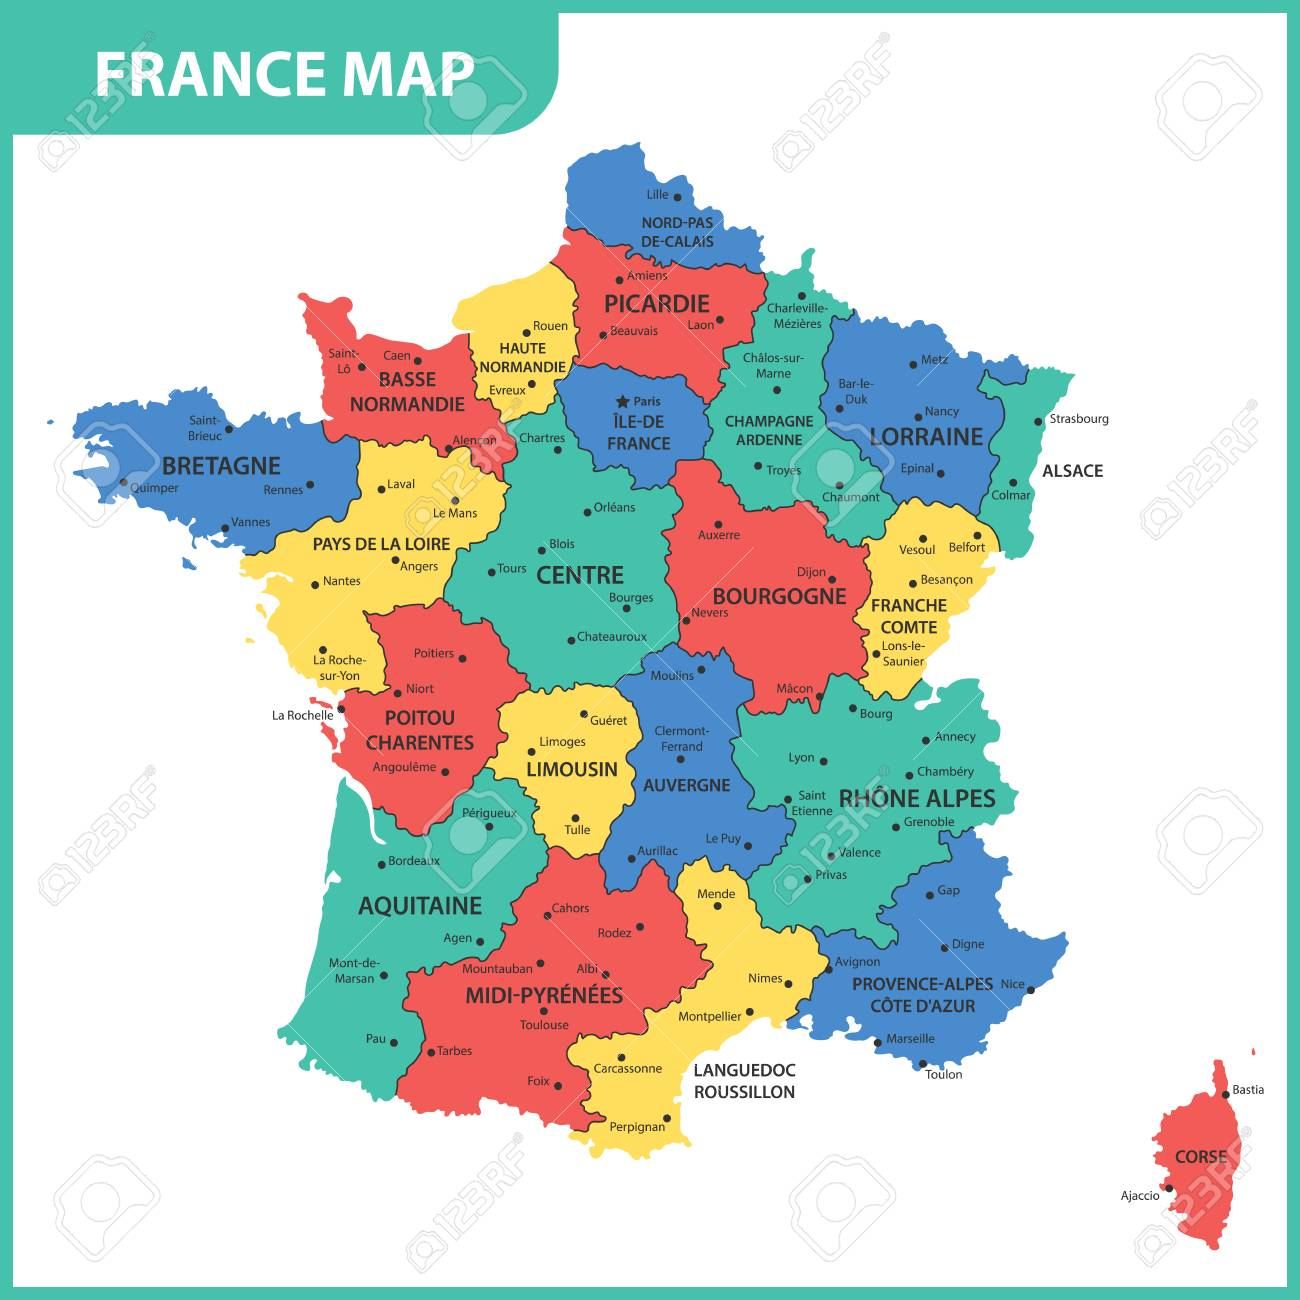 Map Of France Regions With Cities.The Detailed Map Of The France With Regions Or States And Cities